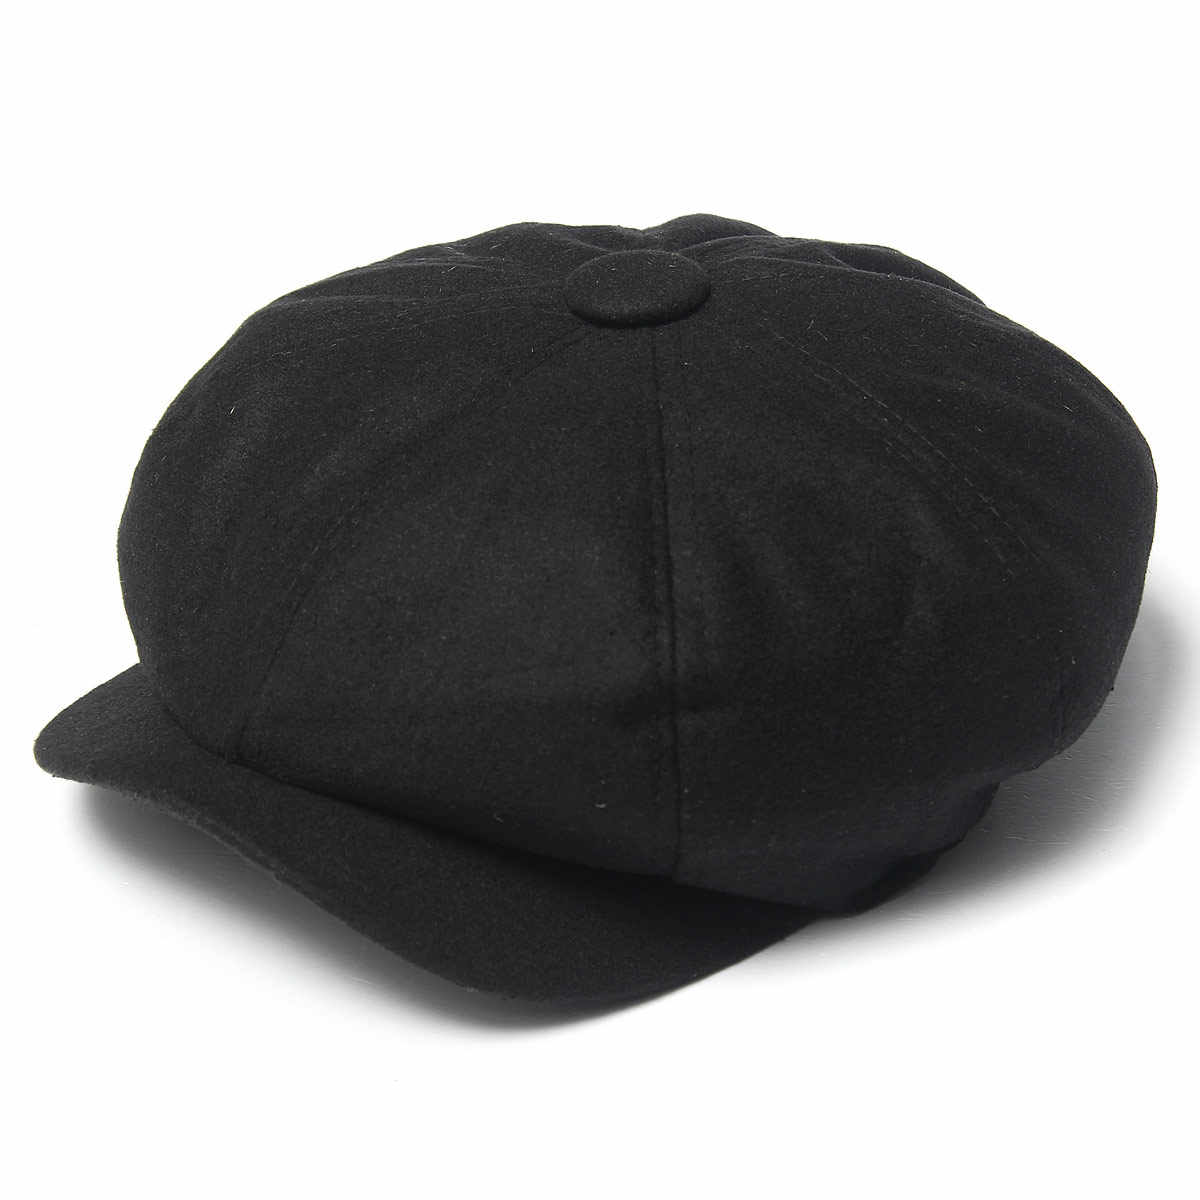 4f6edce03b6 Detail Feedback Questions about Men s Tweed Octagonal Caps Black ...